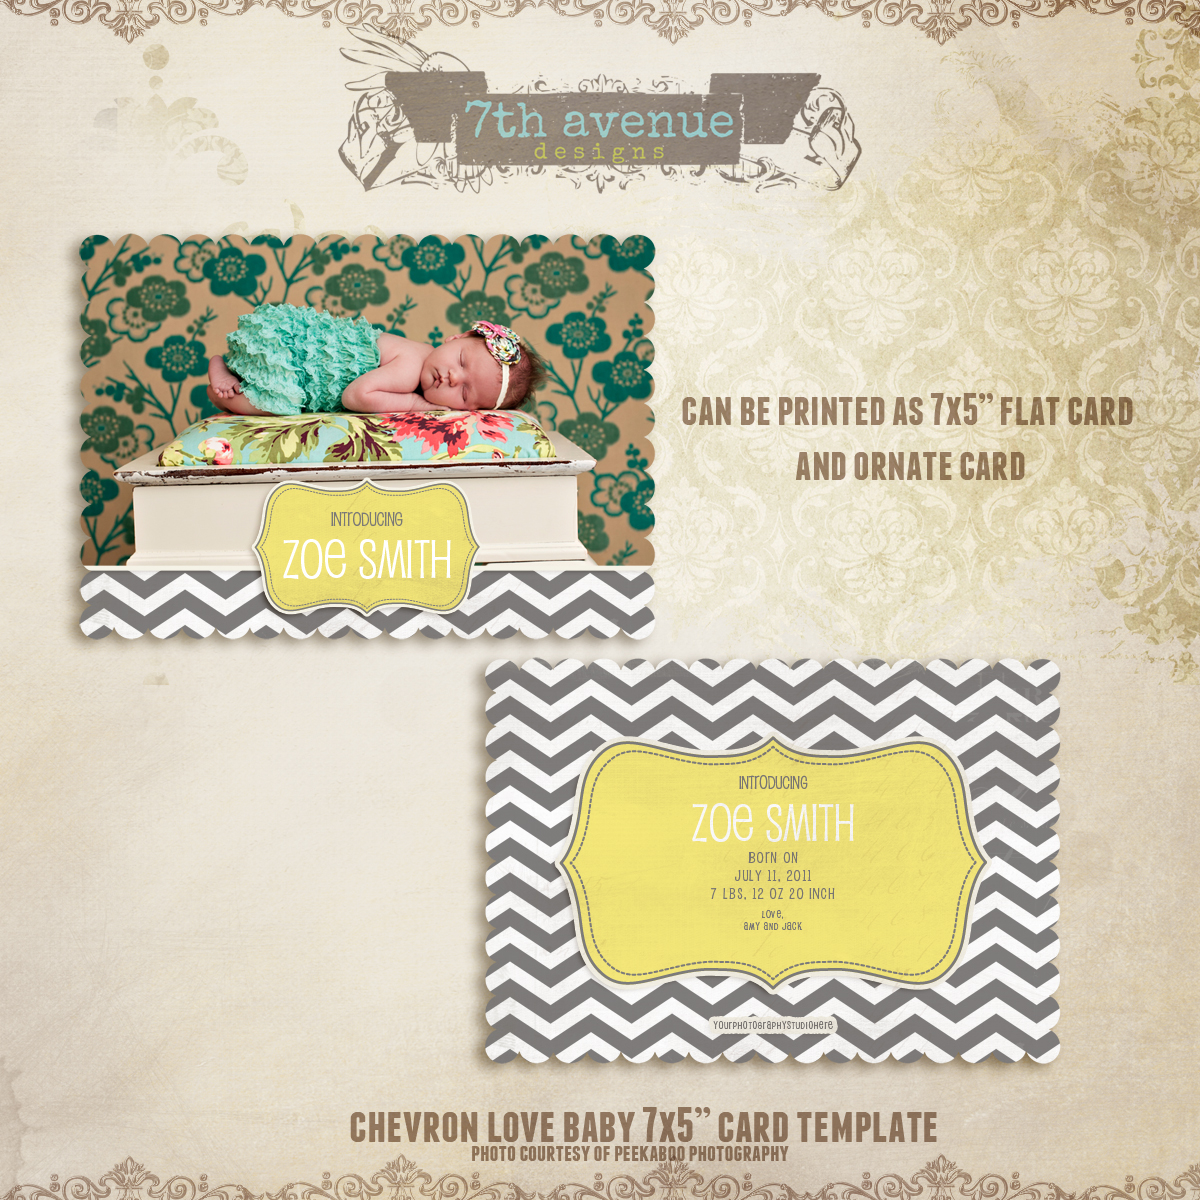 Chevron Love Birth Announcement Card Templates